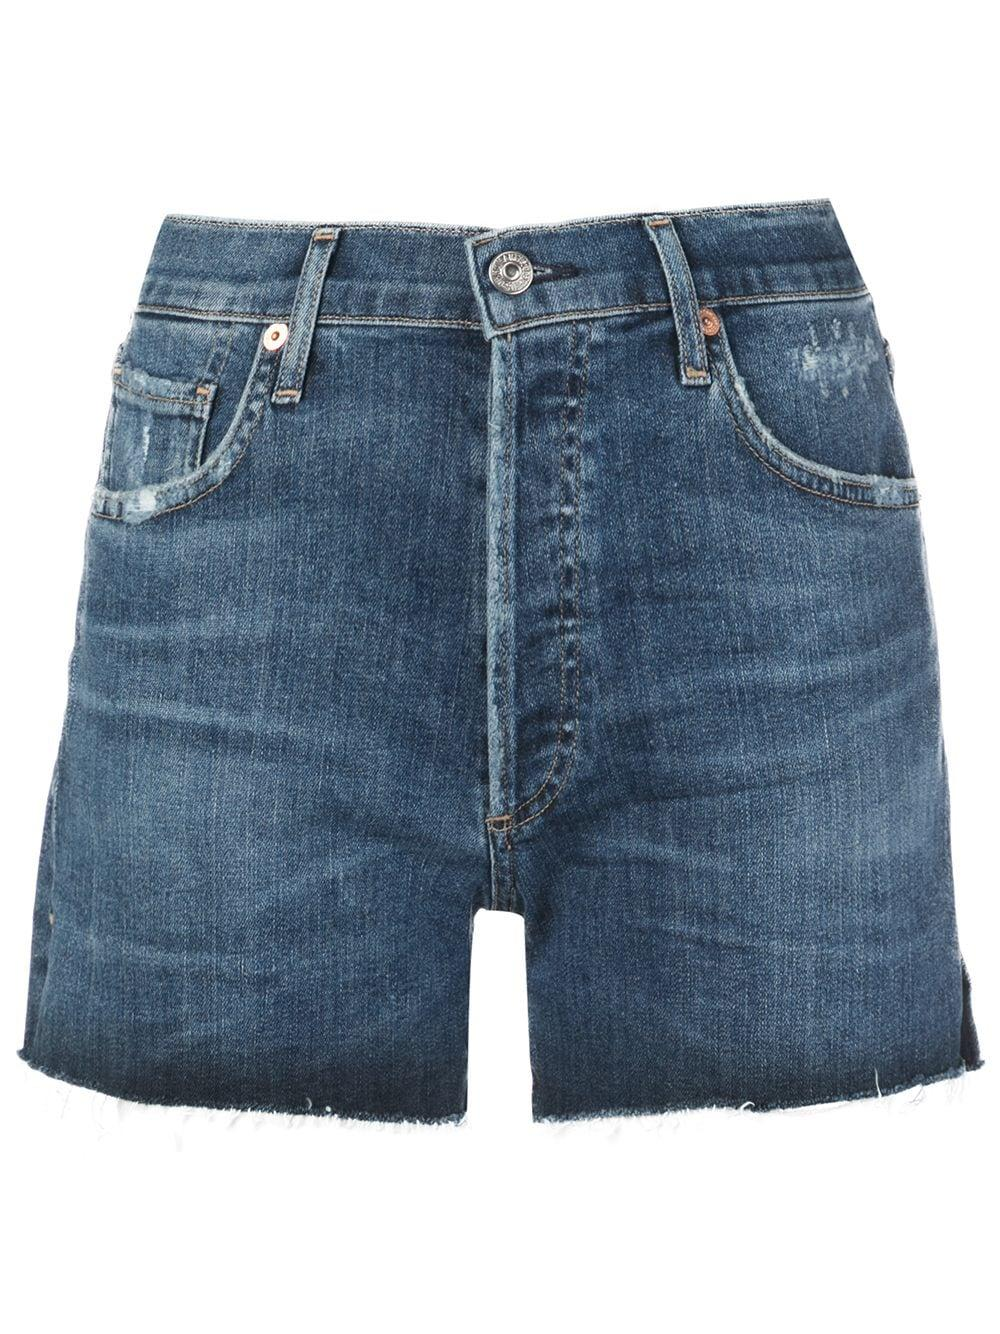 Marlow Easy Raw Hem Jean Short Item # 996-357